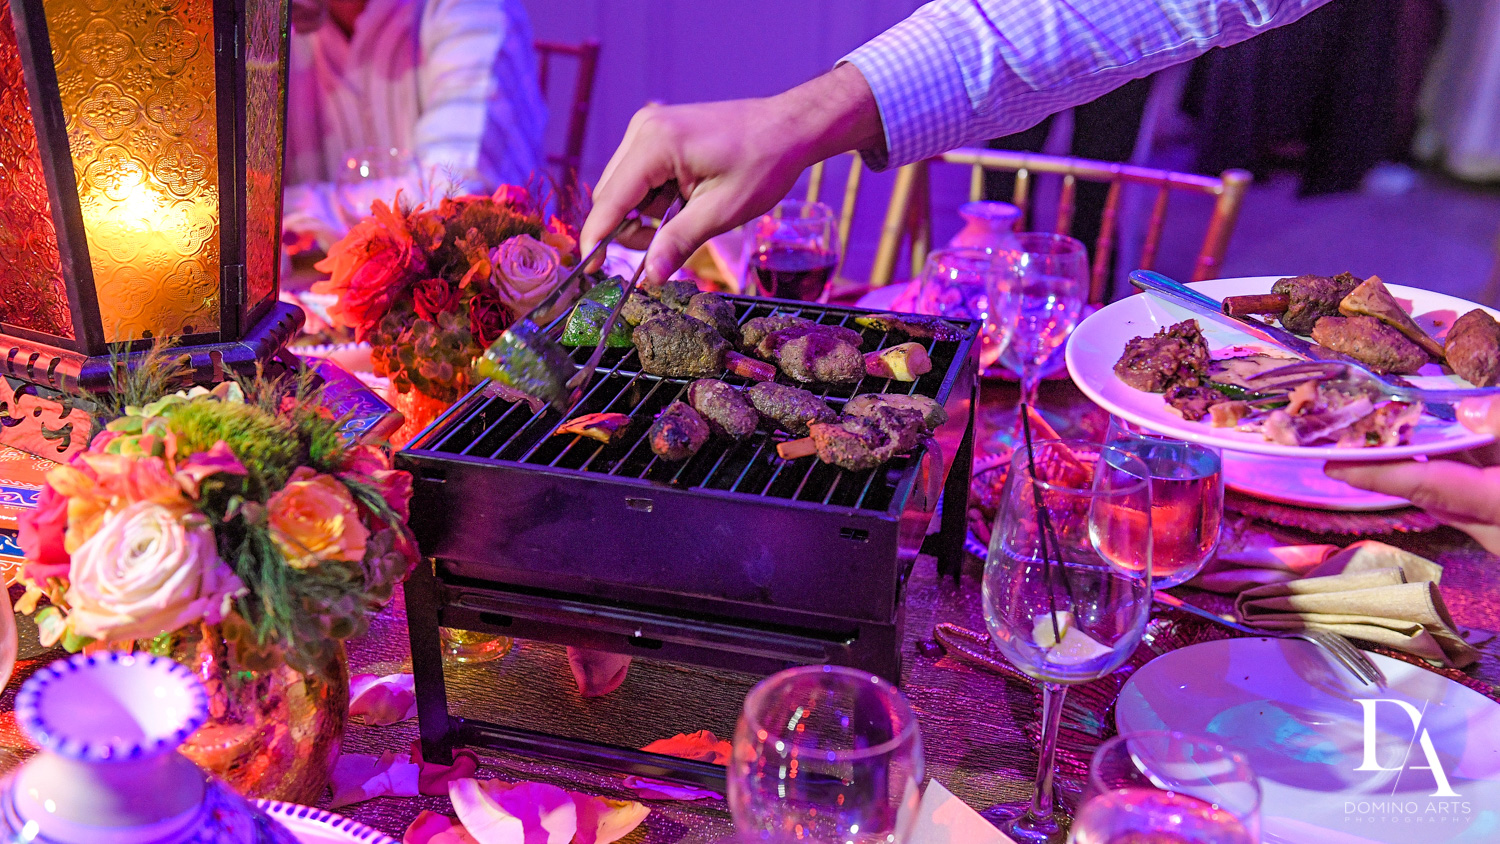 shish kebab at Authentic Morrocan Jewish Henna Party by Domino Arts Photography